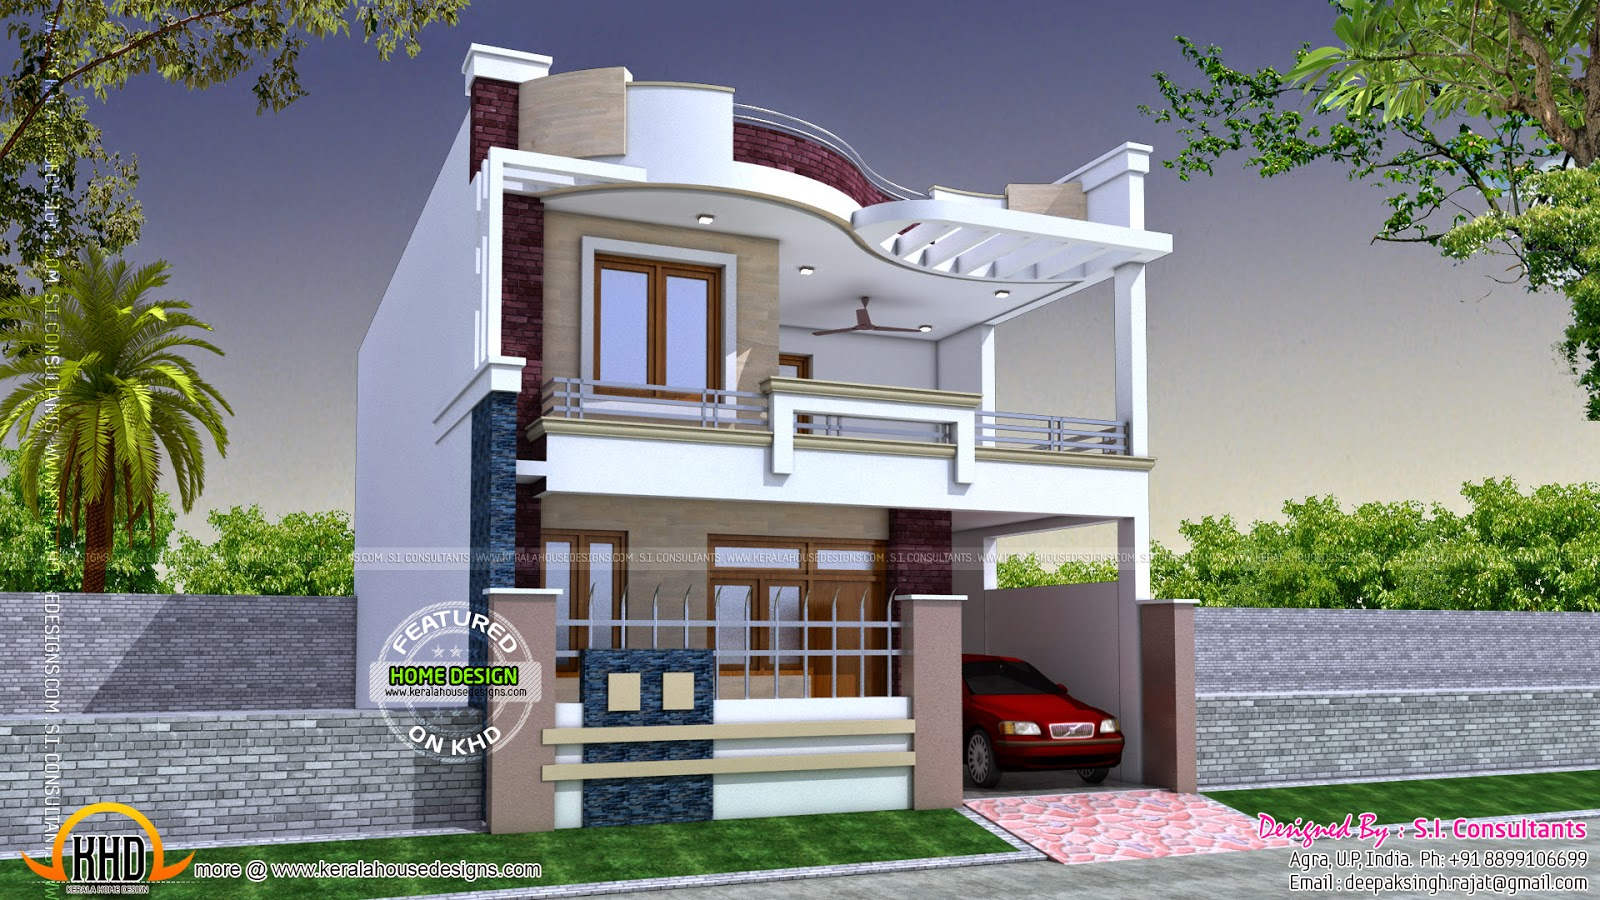 Modern indian home design kerala home design and floor plans for Indian house decor